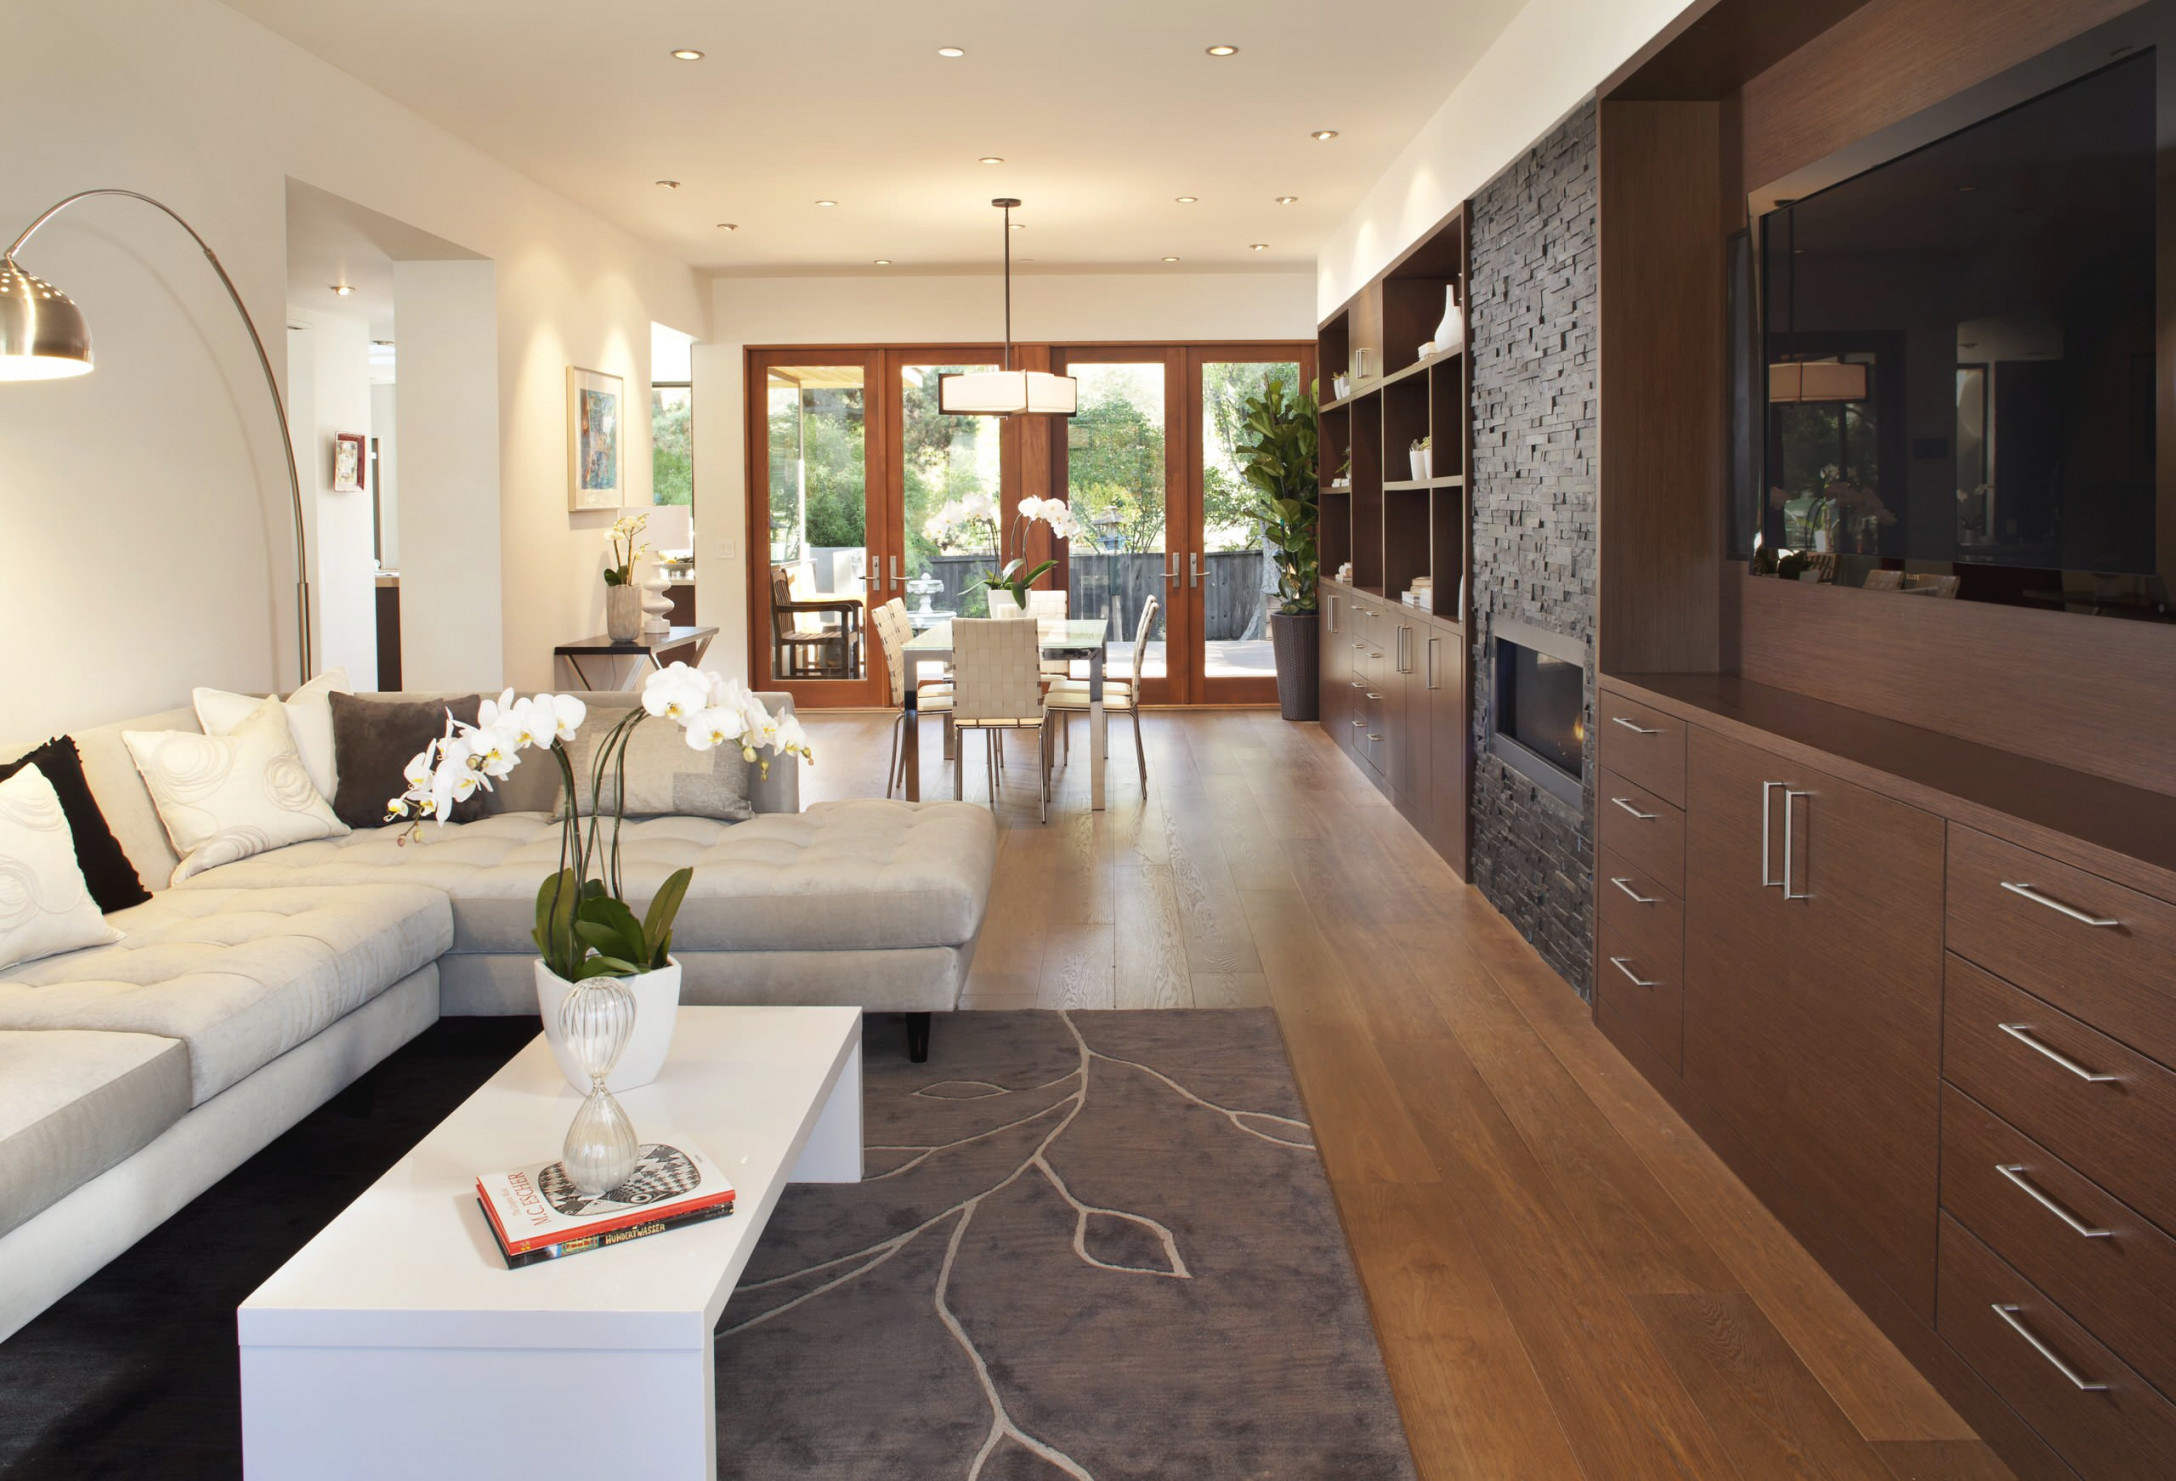 Living Room And Dining Room Combo Family Room Ideas & Photos for Living Room And Dining Room Combo